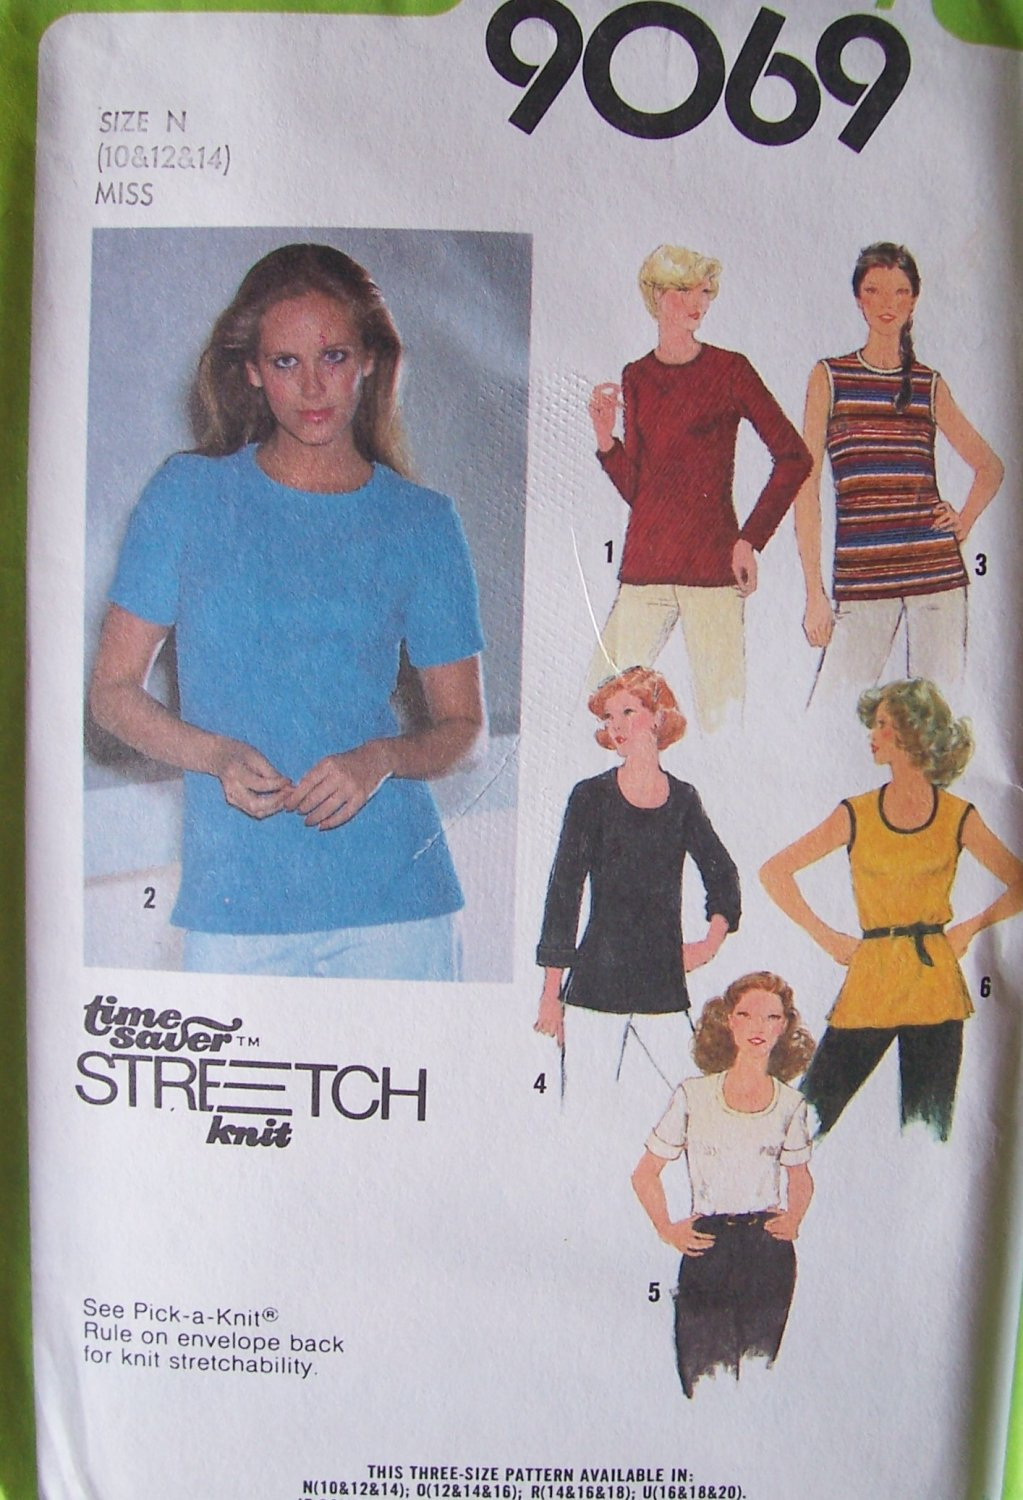 Vintage 70s Simplicity 9069 Tunic Top Pattern Tank Short or Long Sleeve Uncut Size 10-14